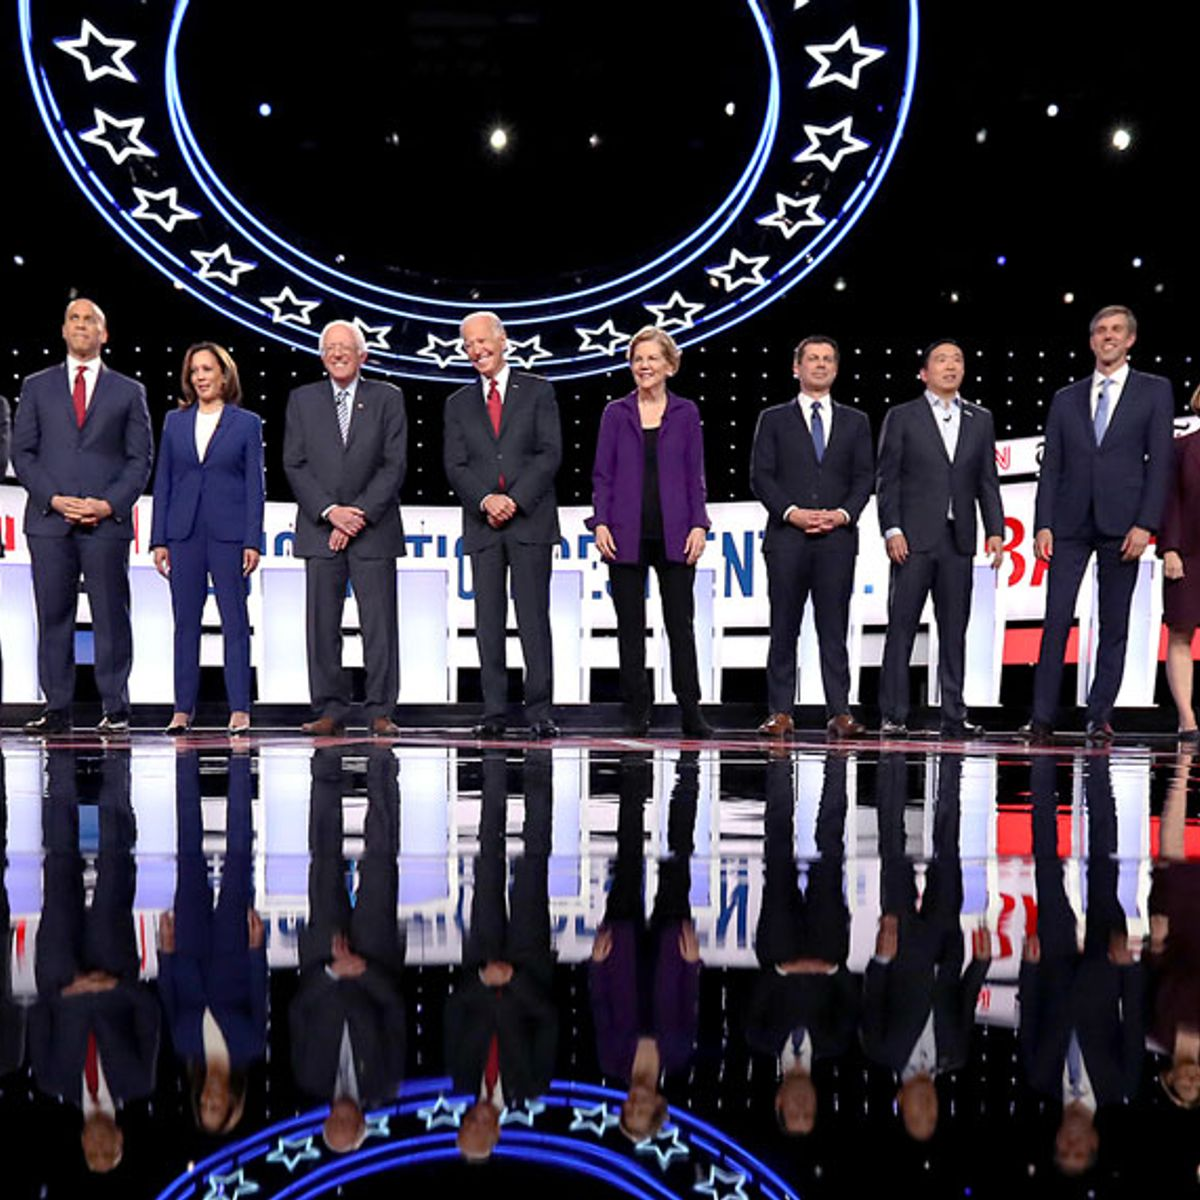 3 winners and 4 losers from the fourth Democratic presidential primary debate